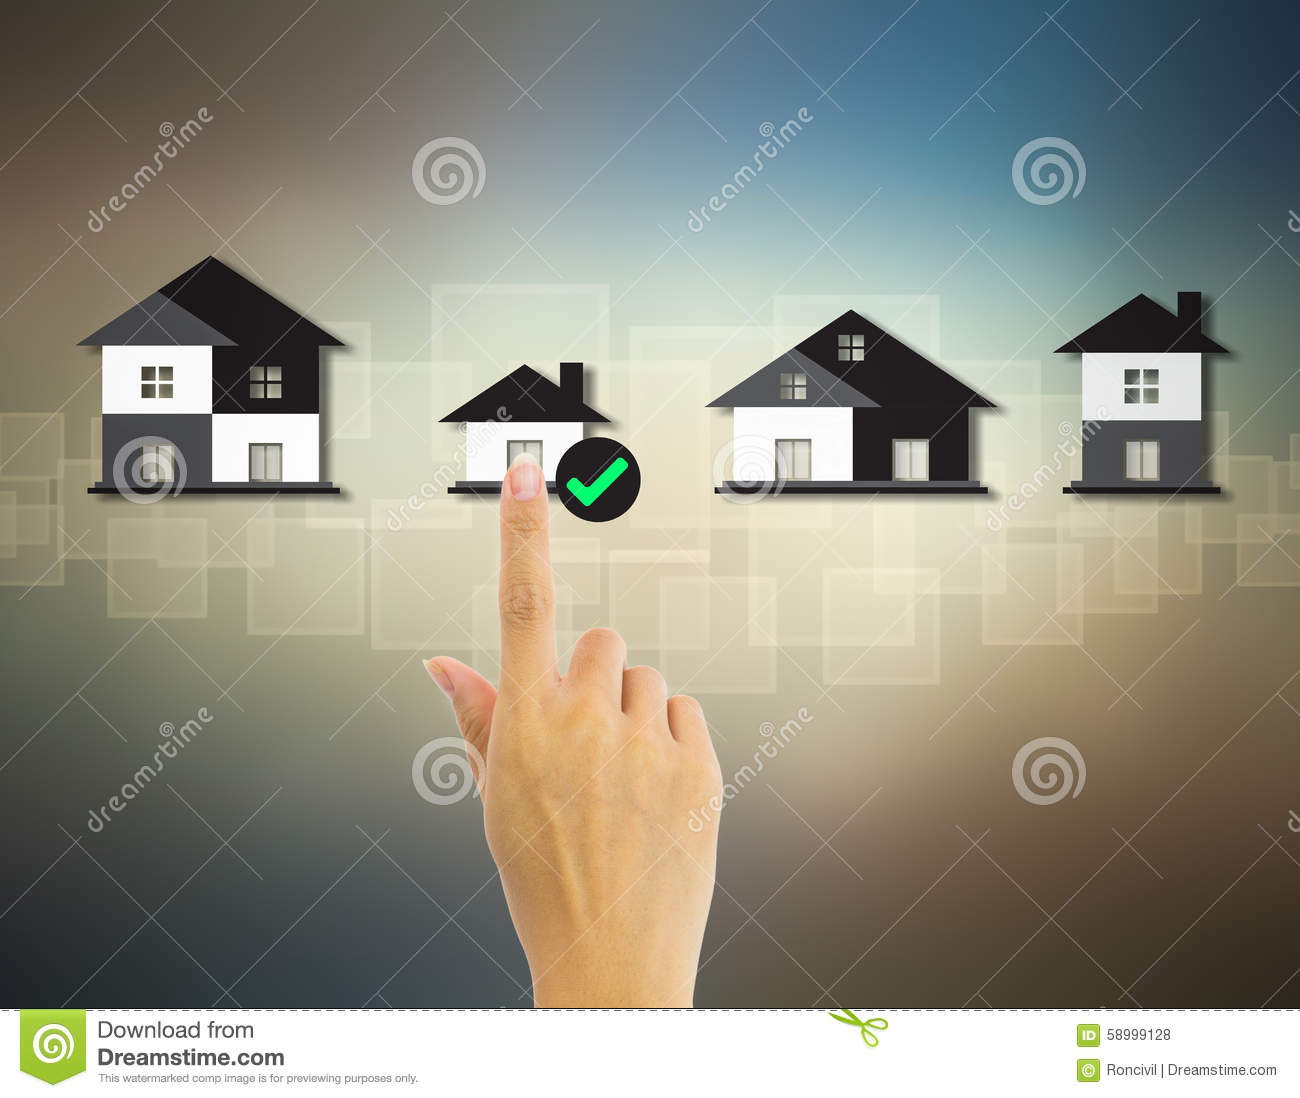 Home Select Stock Photo Image 58999128